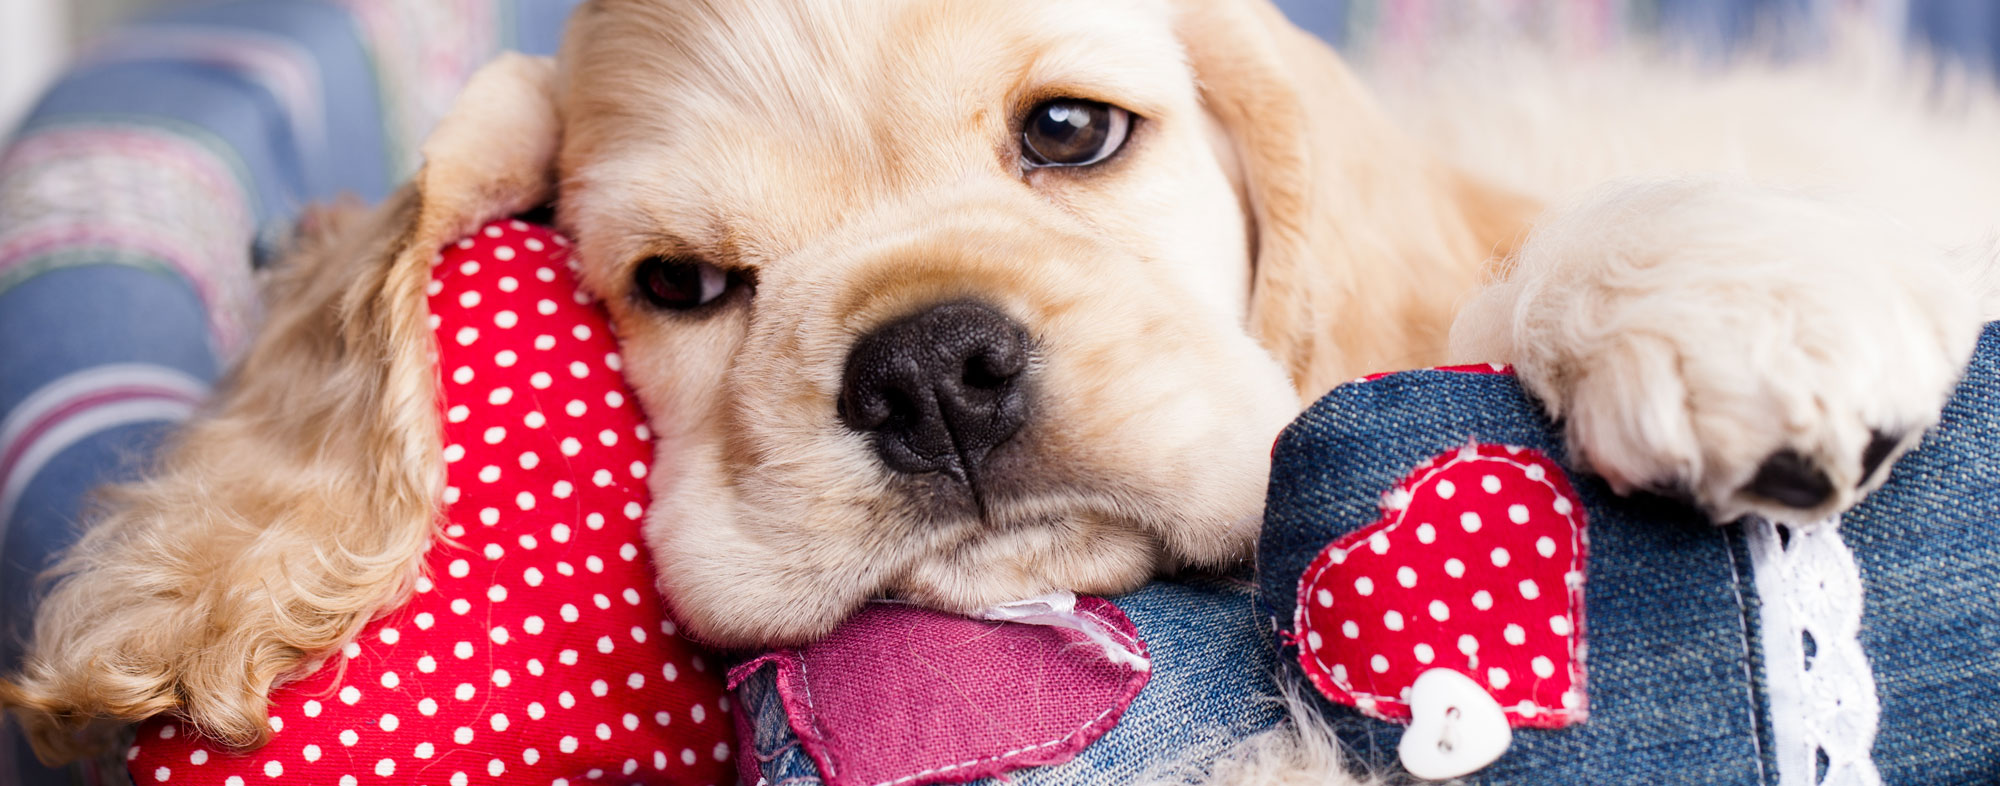 Avoid giving your dog any Valentines Day foods or they'll get sick